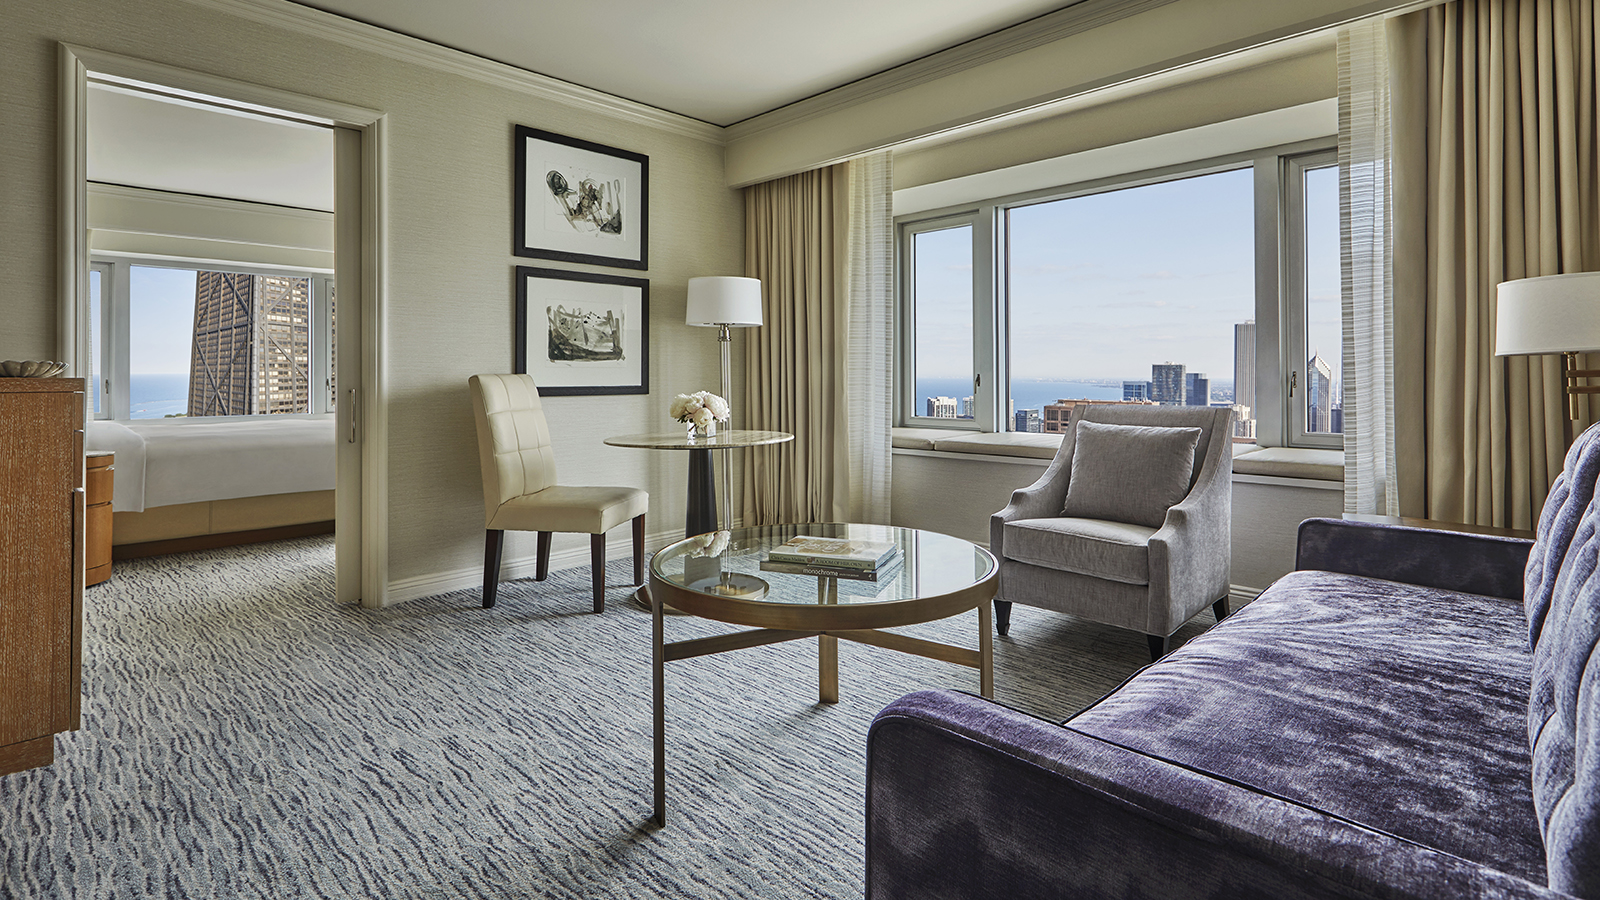 Our Stay Longer Package Gives You More Time To Enjoy The Hotelu0027s Luxurious  Accommodations And Magnificent Views, As Well As Chicagou0027s World Class  Shopping, ...